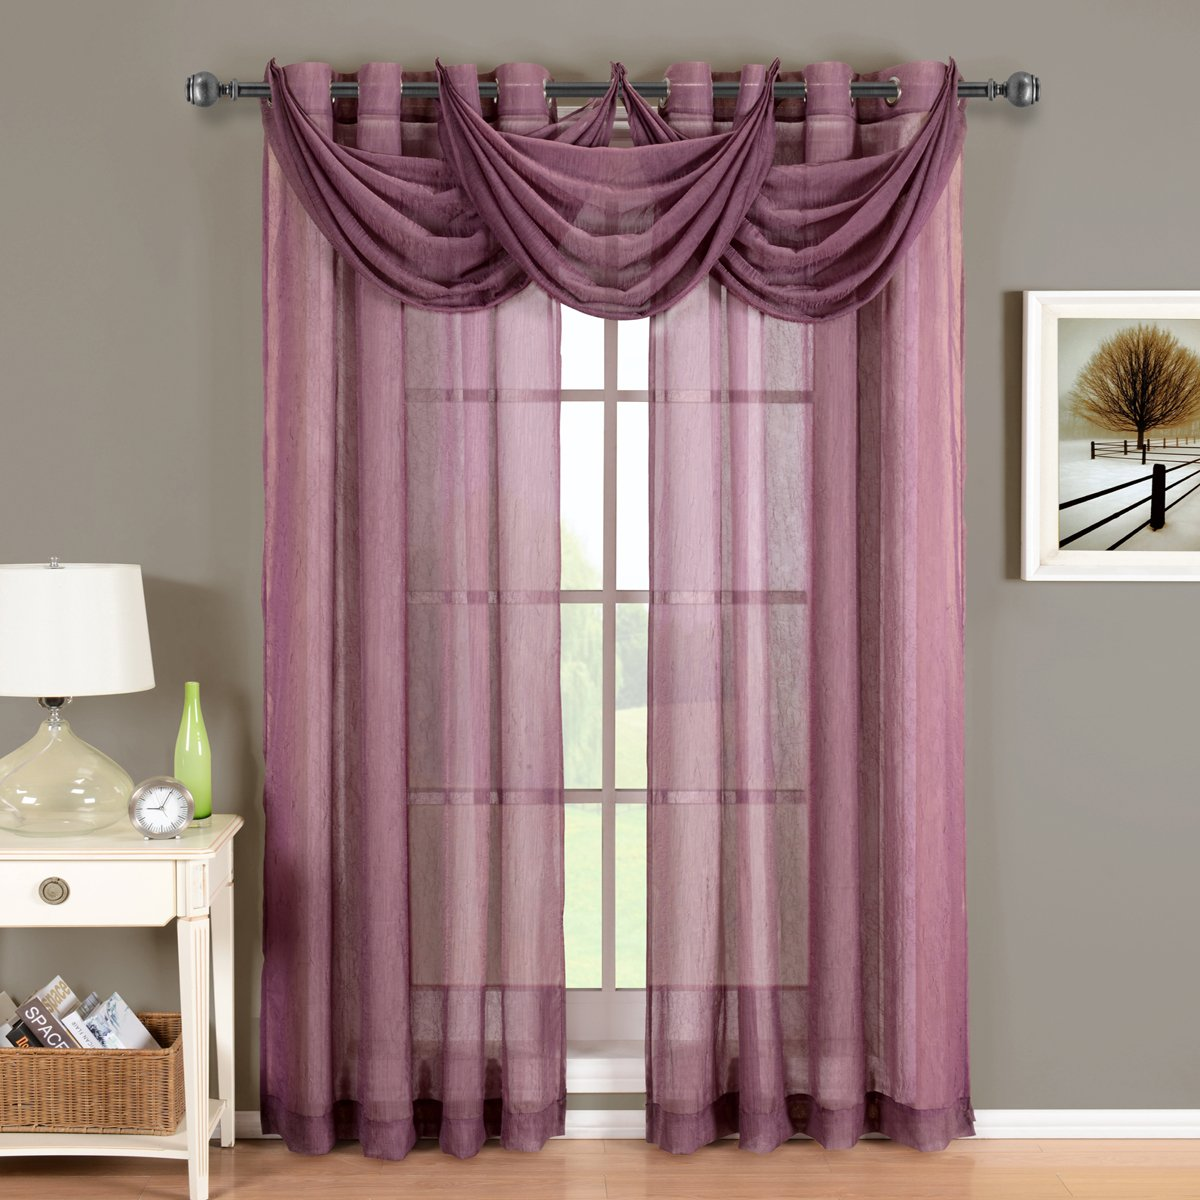 Luxury Abri Eggplant Grommet Crushed Sheer Curtain, , by Royal Hotel